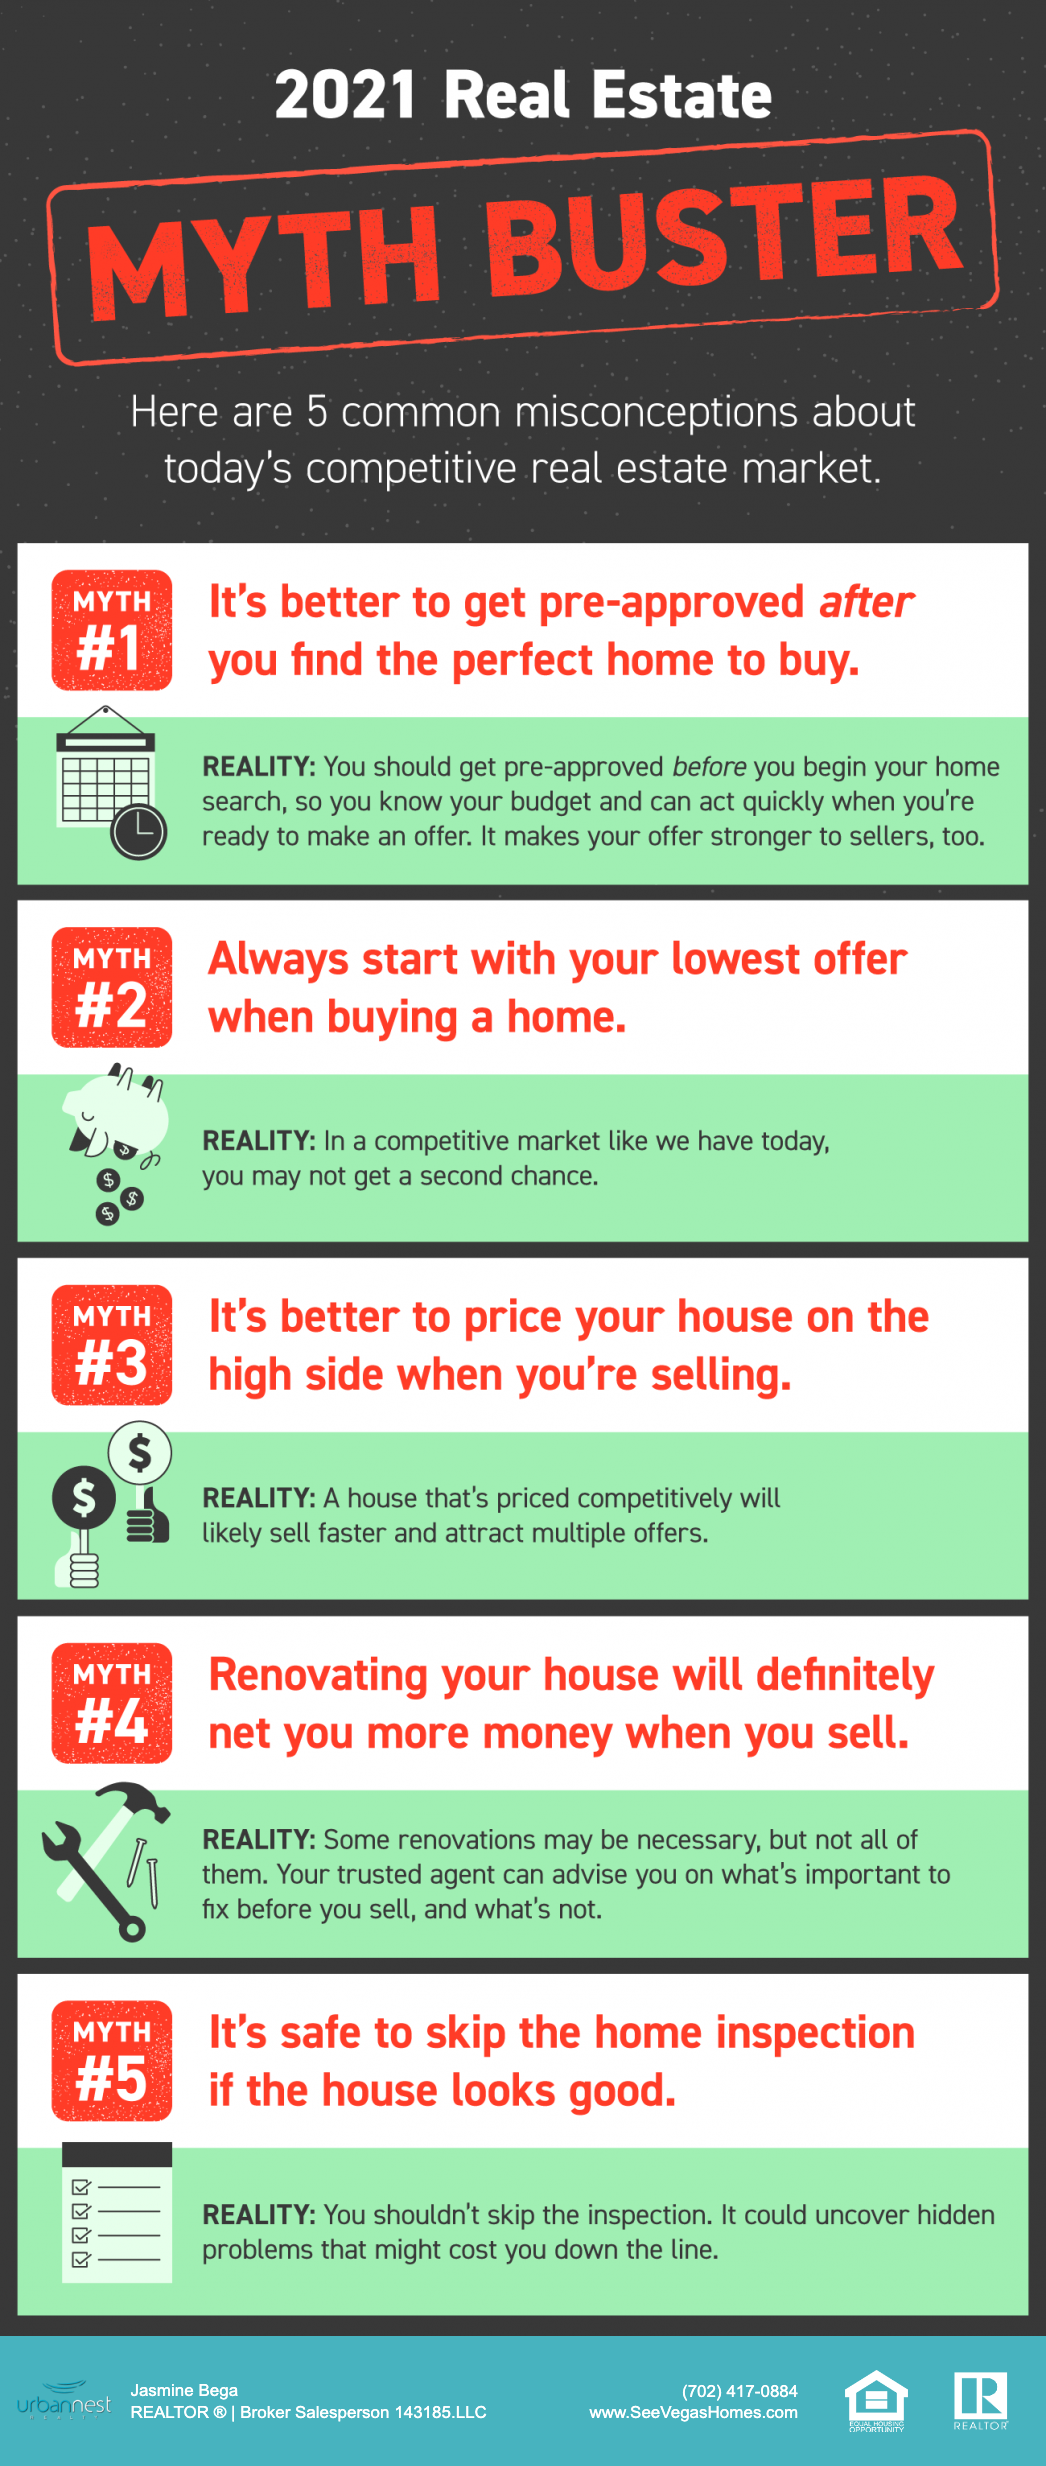 2021 Real Estate Myth Buster [INFOGRAPHIC] SeeVegasHomes